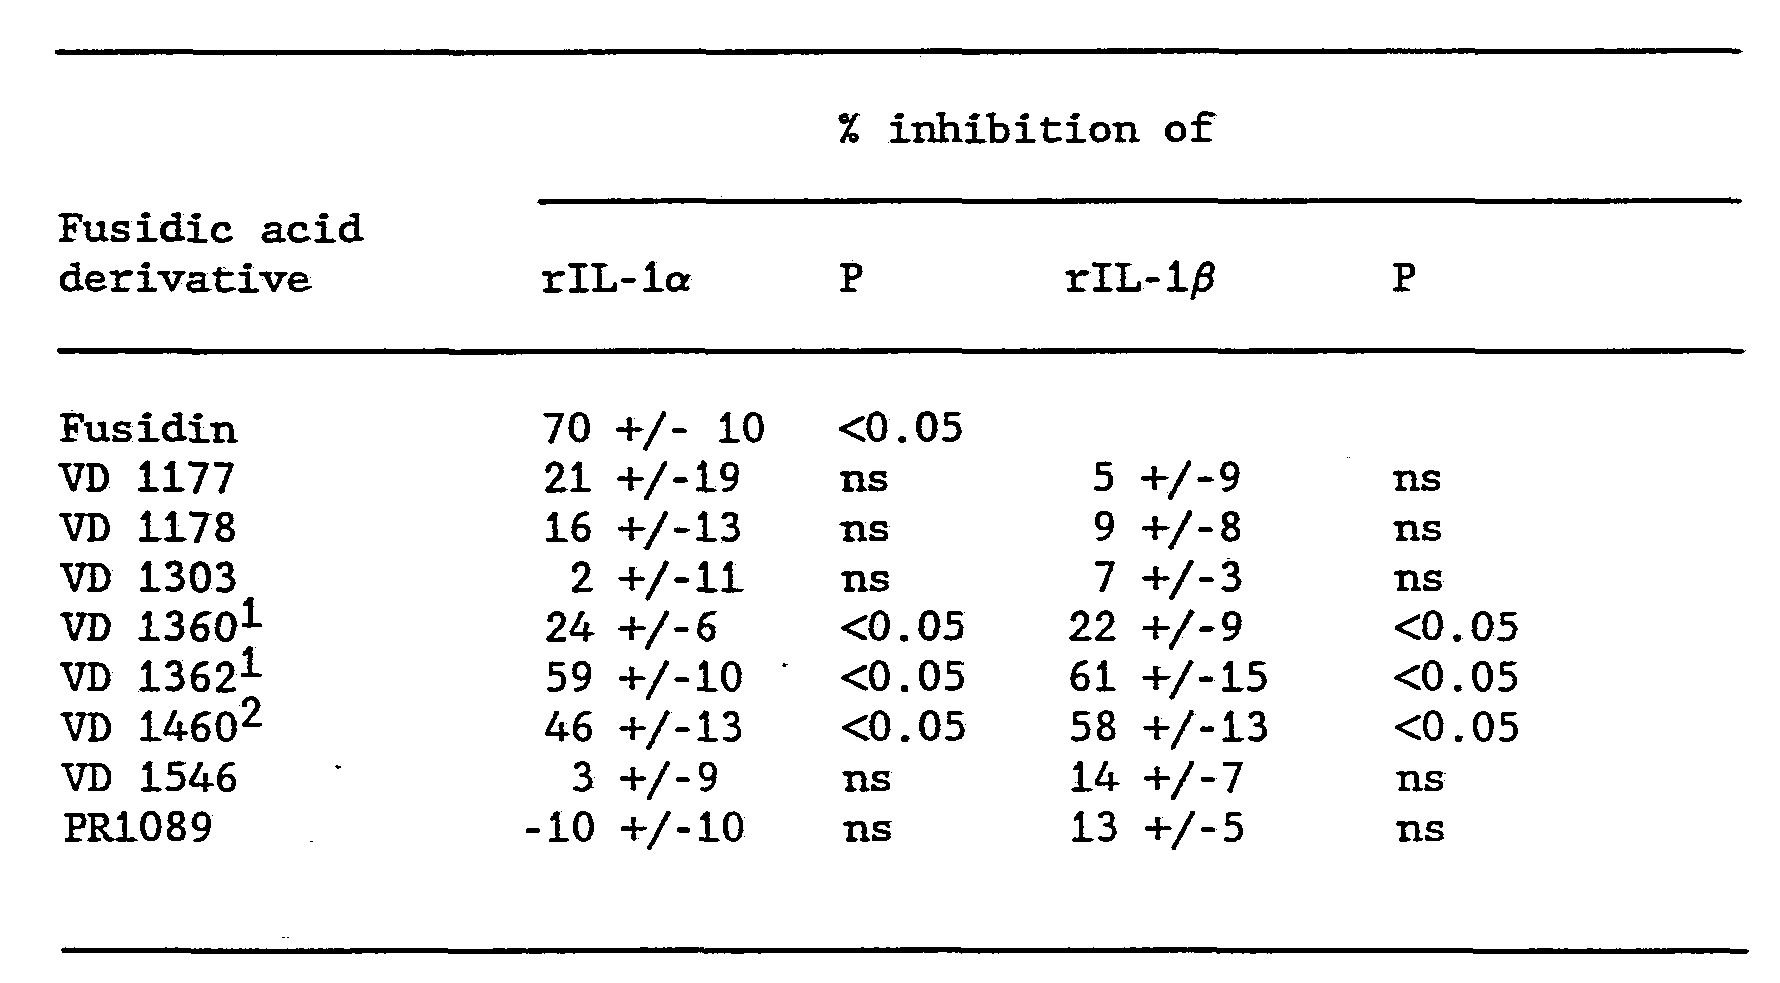 WO1990004398A1 - A new pharmaceutical use of fusidic acid